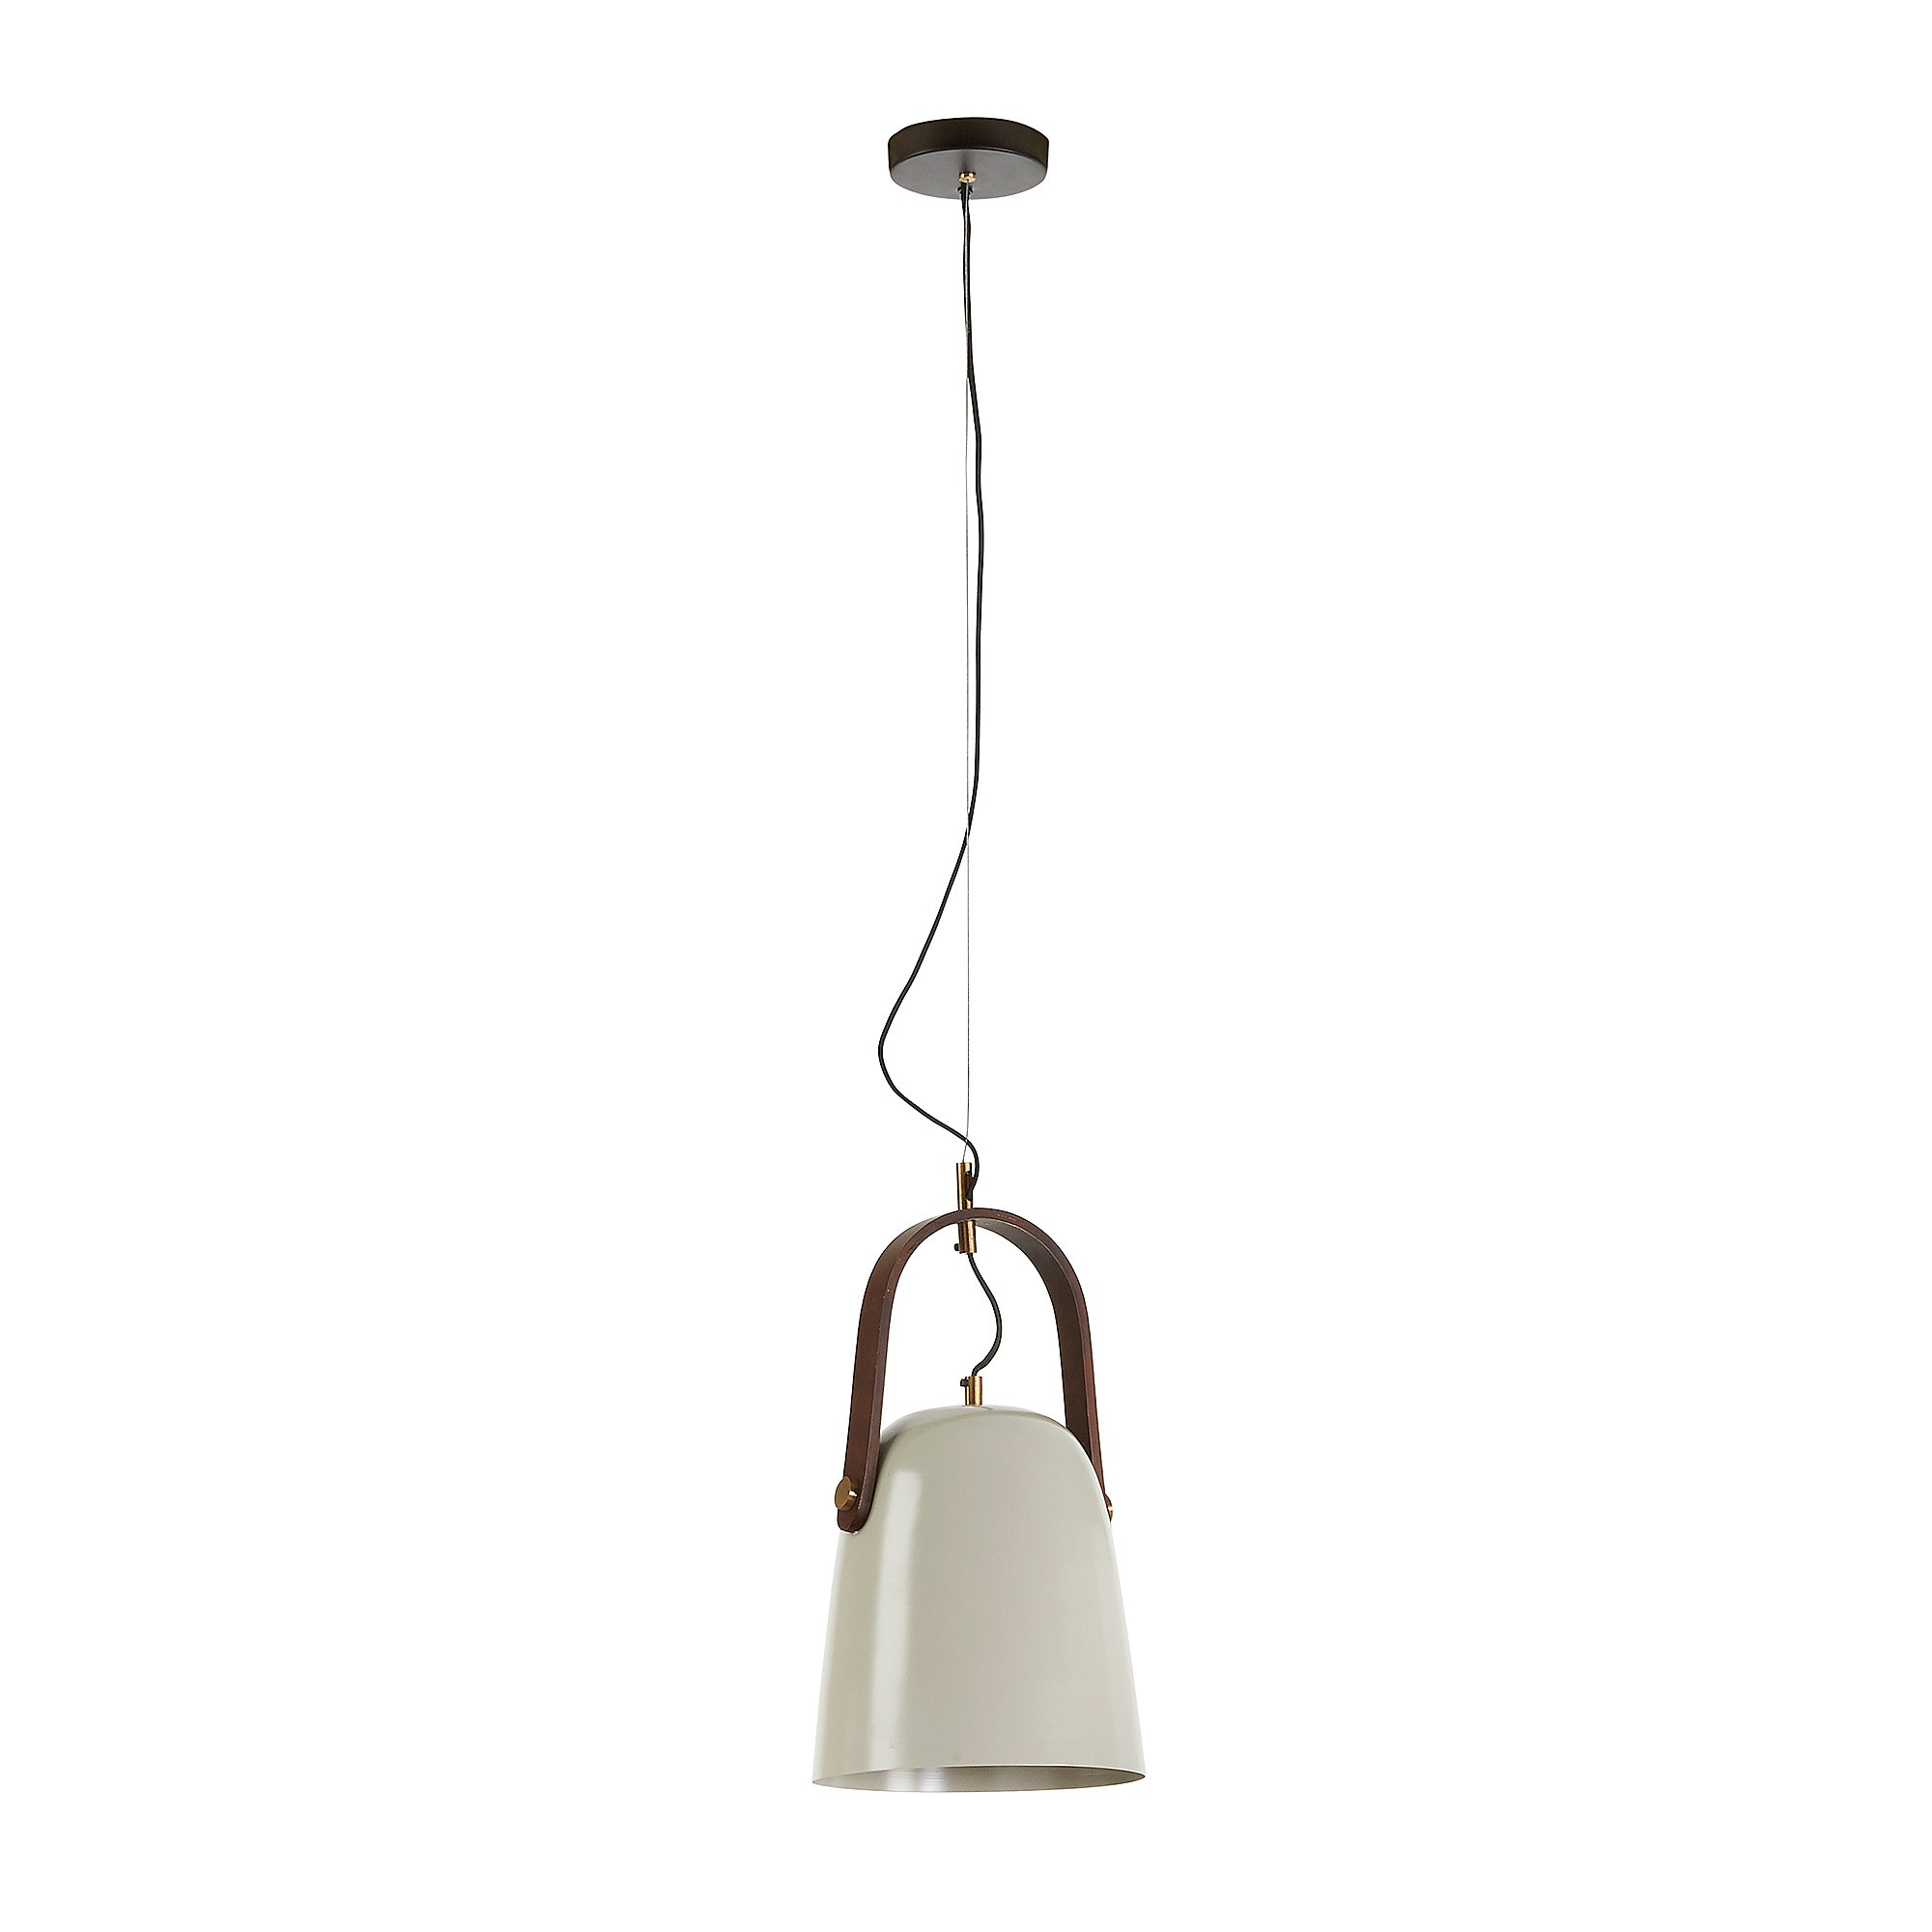 Zaka Steel Pendant Light, Long Shade, Light Beige